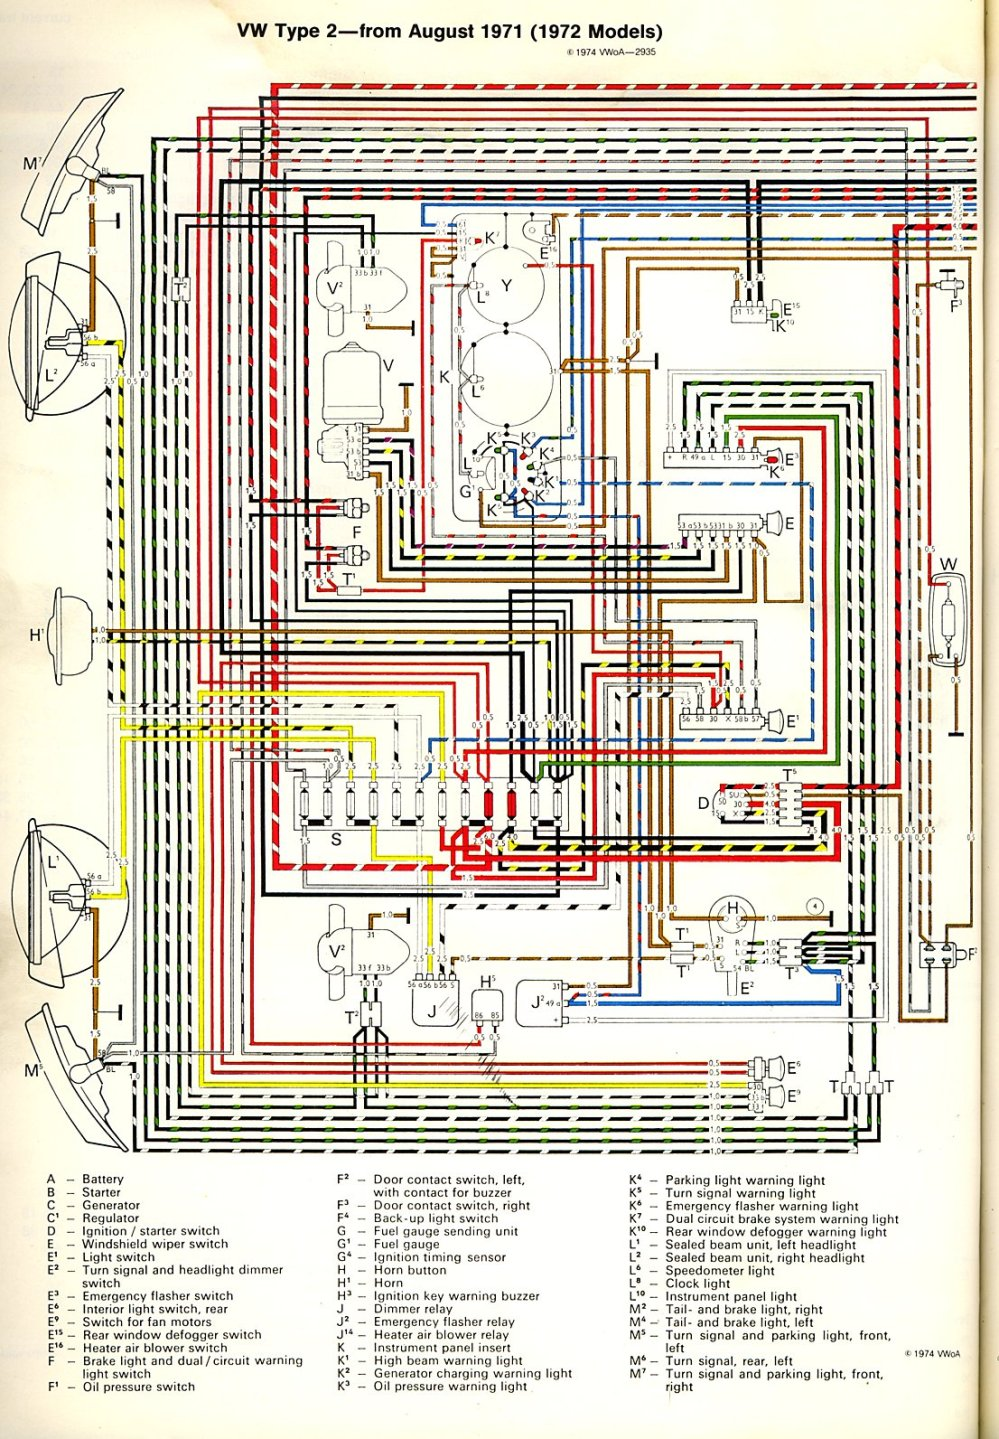 medium resolution of 1972 bus wiring diagram thegoldenbug com 1972 vw karmann ghia wiring diagram 1972 vw beetle alternator wiring diagram